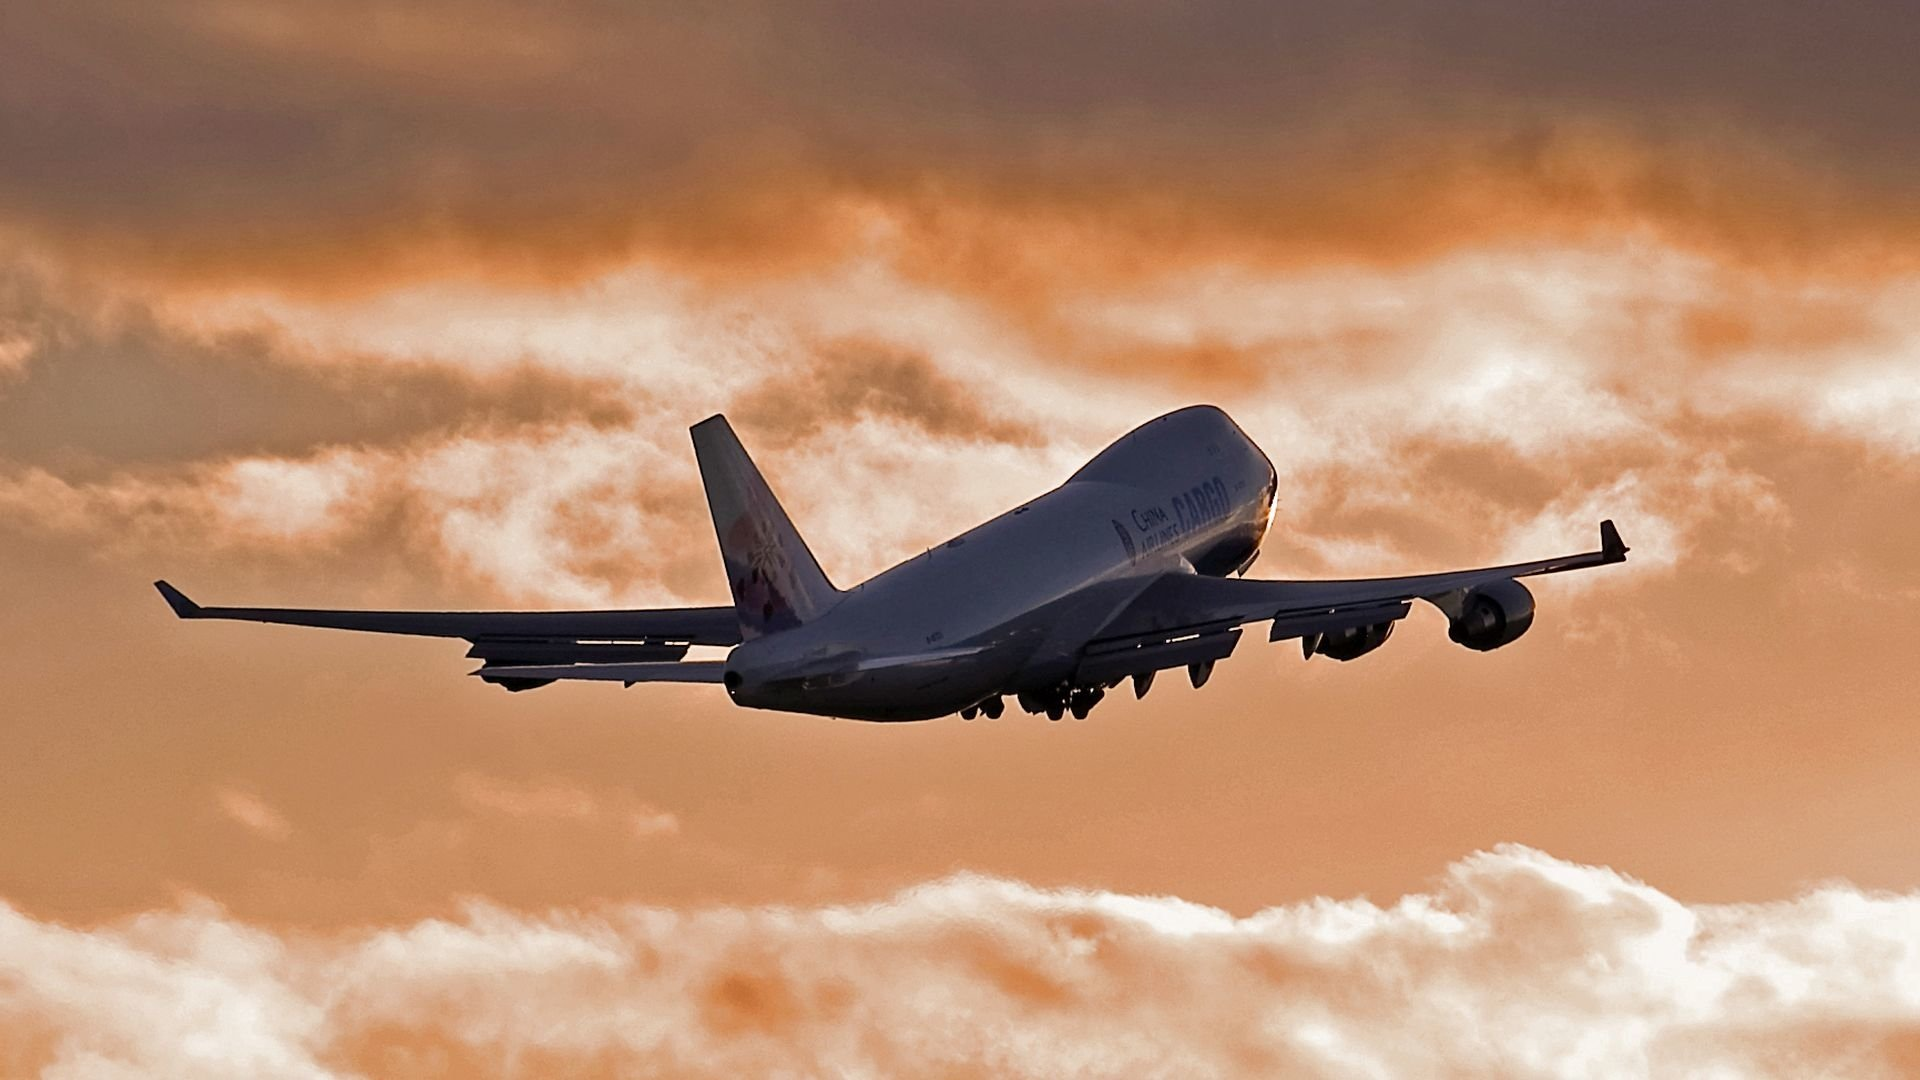 1920x1080 - Boeing 747 Wallpapers 11